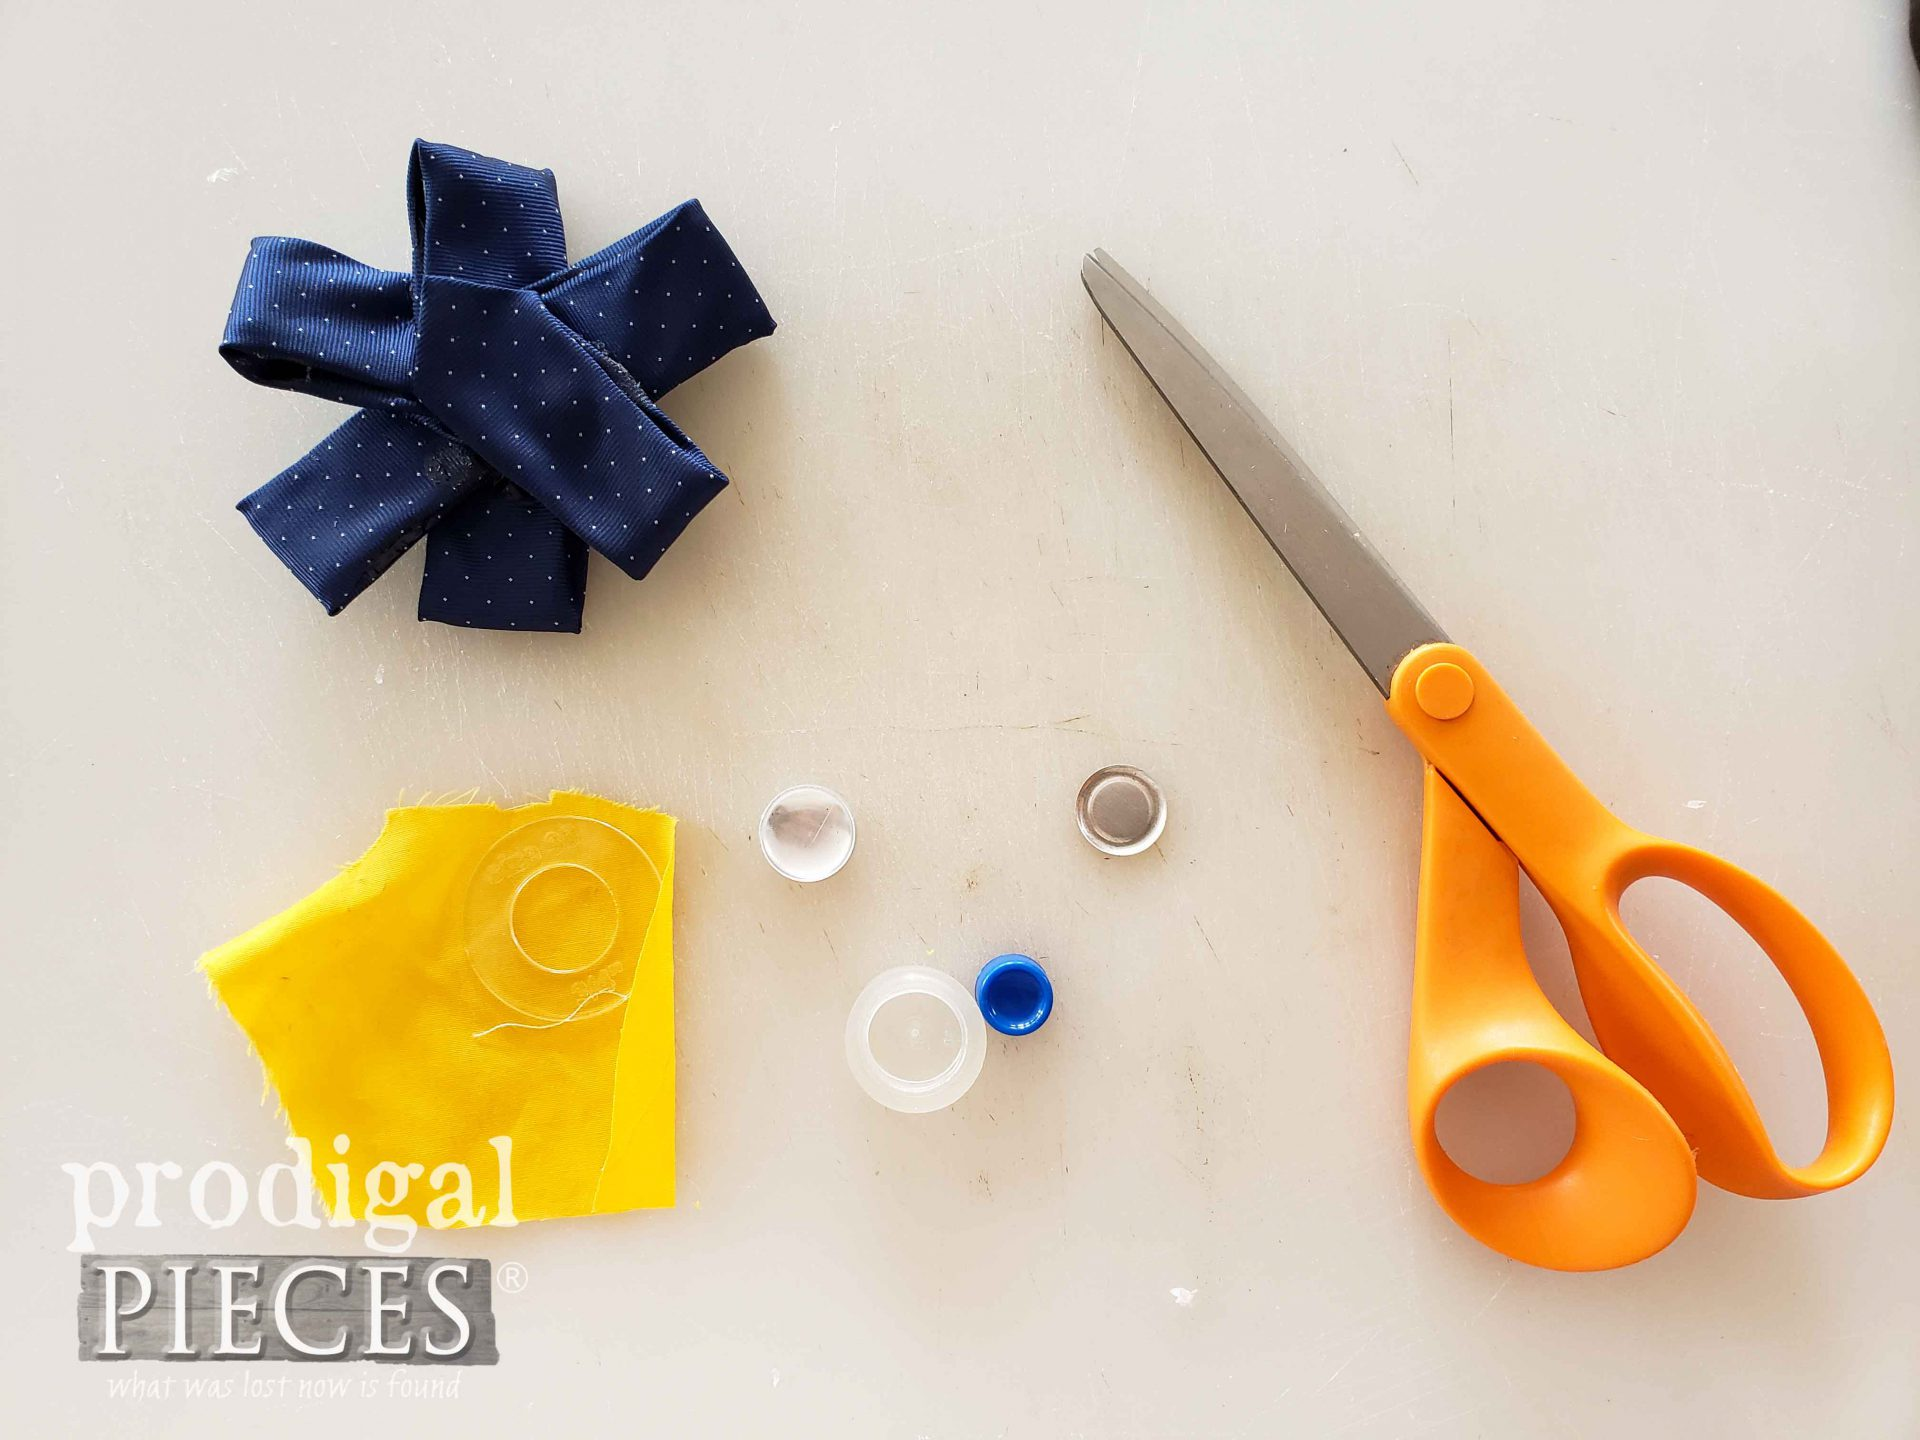 Upcycled Boutonniere Parts for Pinwheel Flower by Larissa of Prodigal Pieces | prodigalpieces.com #prodigalpieces #diy #handmade #wedding #fathersday #dad